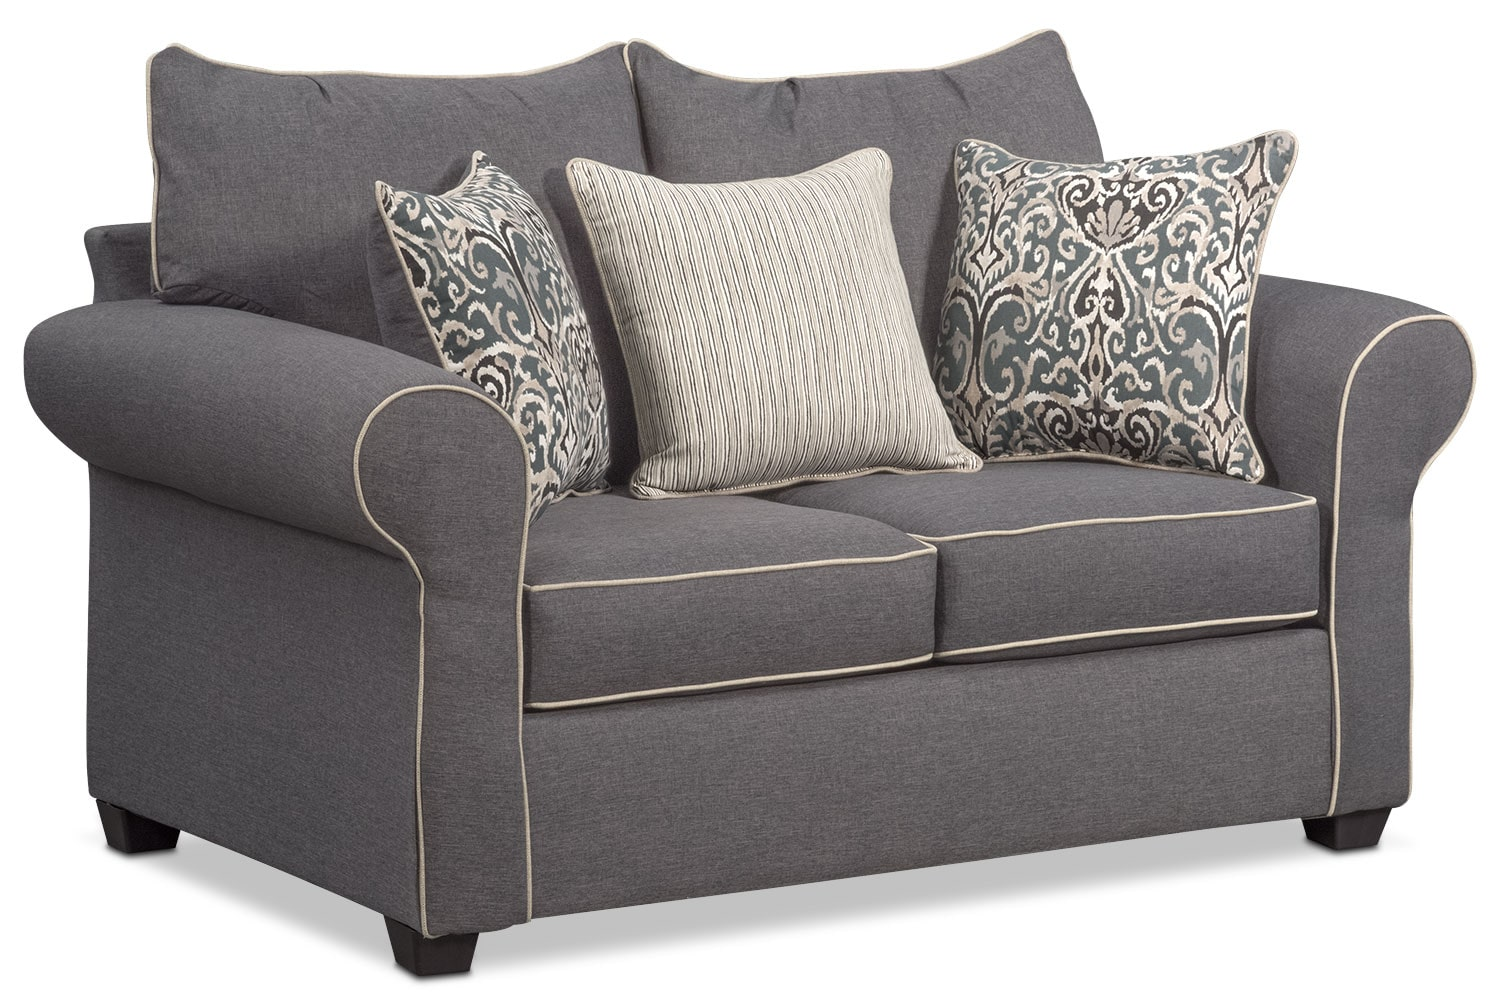 Exceptionnel Carla Queen Memory Foam Sleeper Sofa And Loveseat Set   Gray By Factory  Outlet